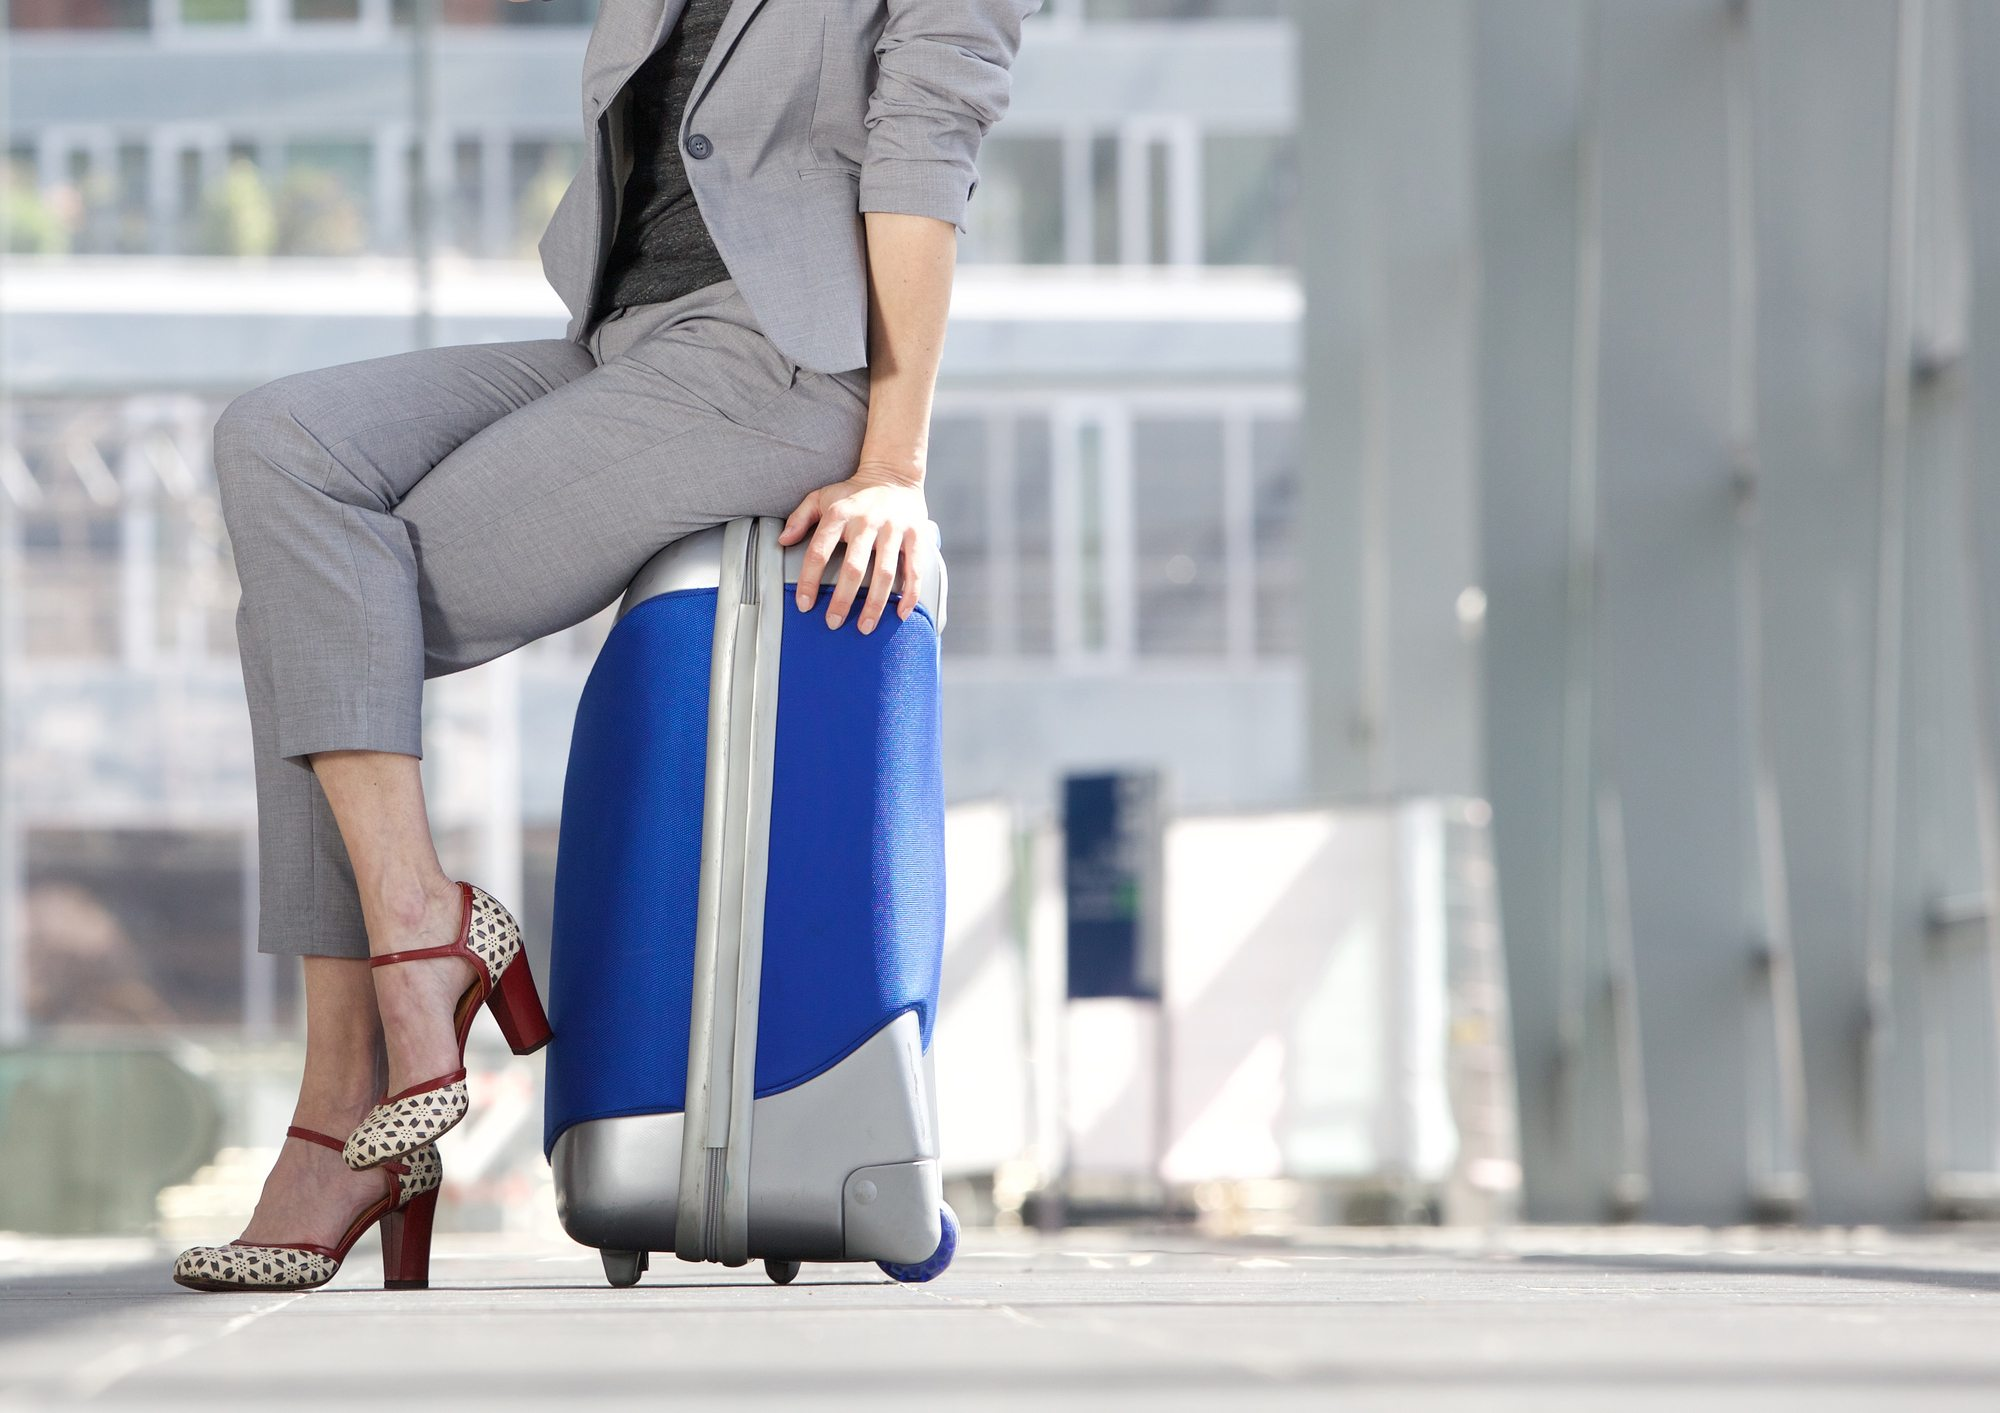 Business travel tip for safety: keep luggage nearby when traveling